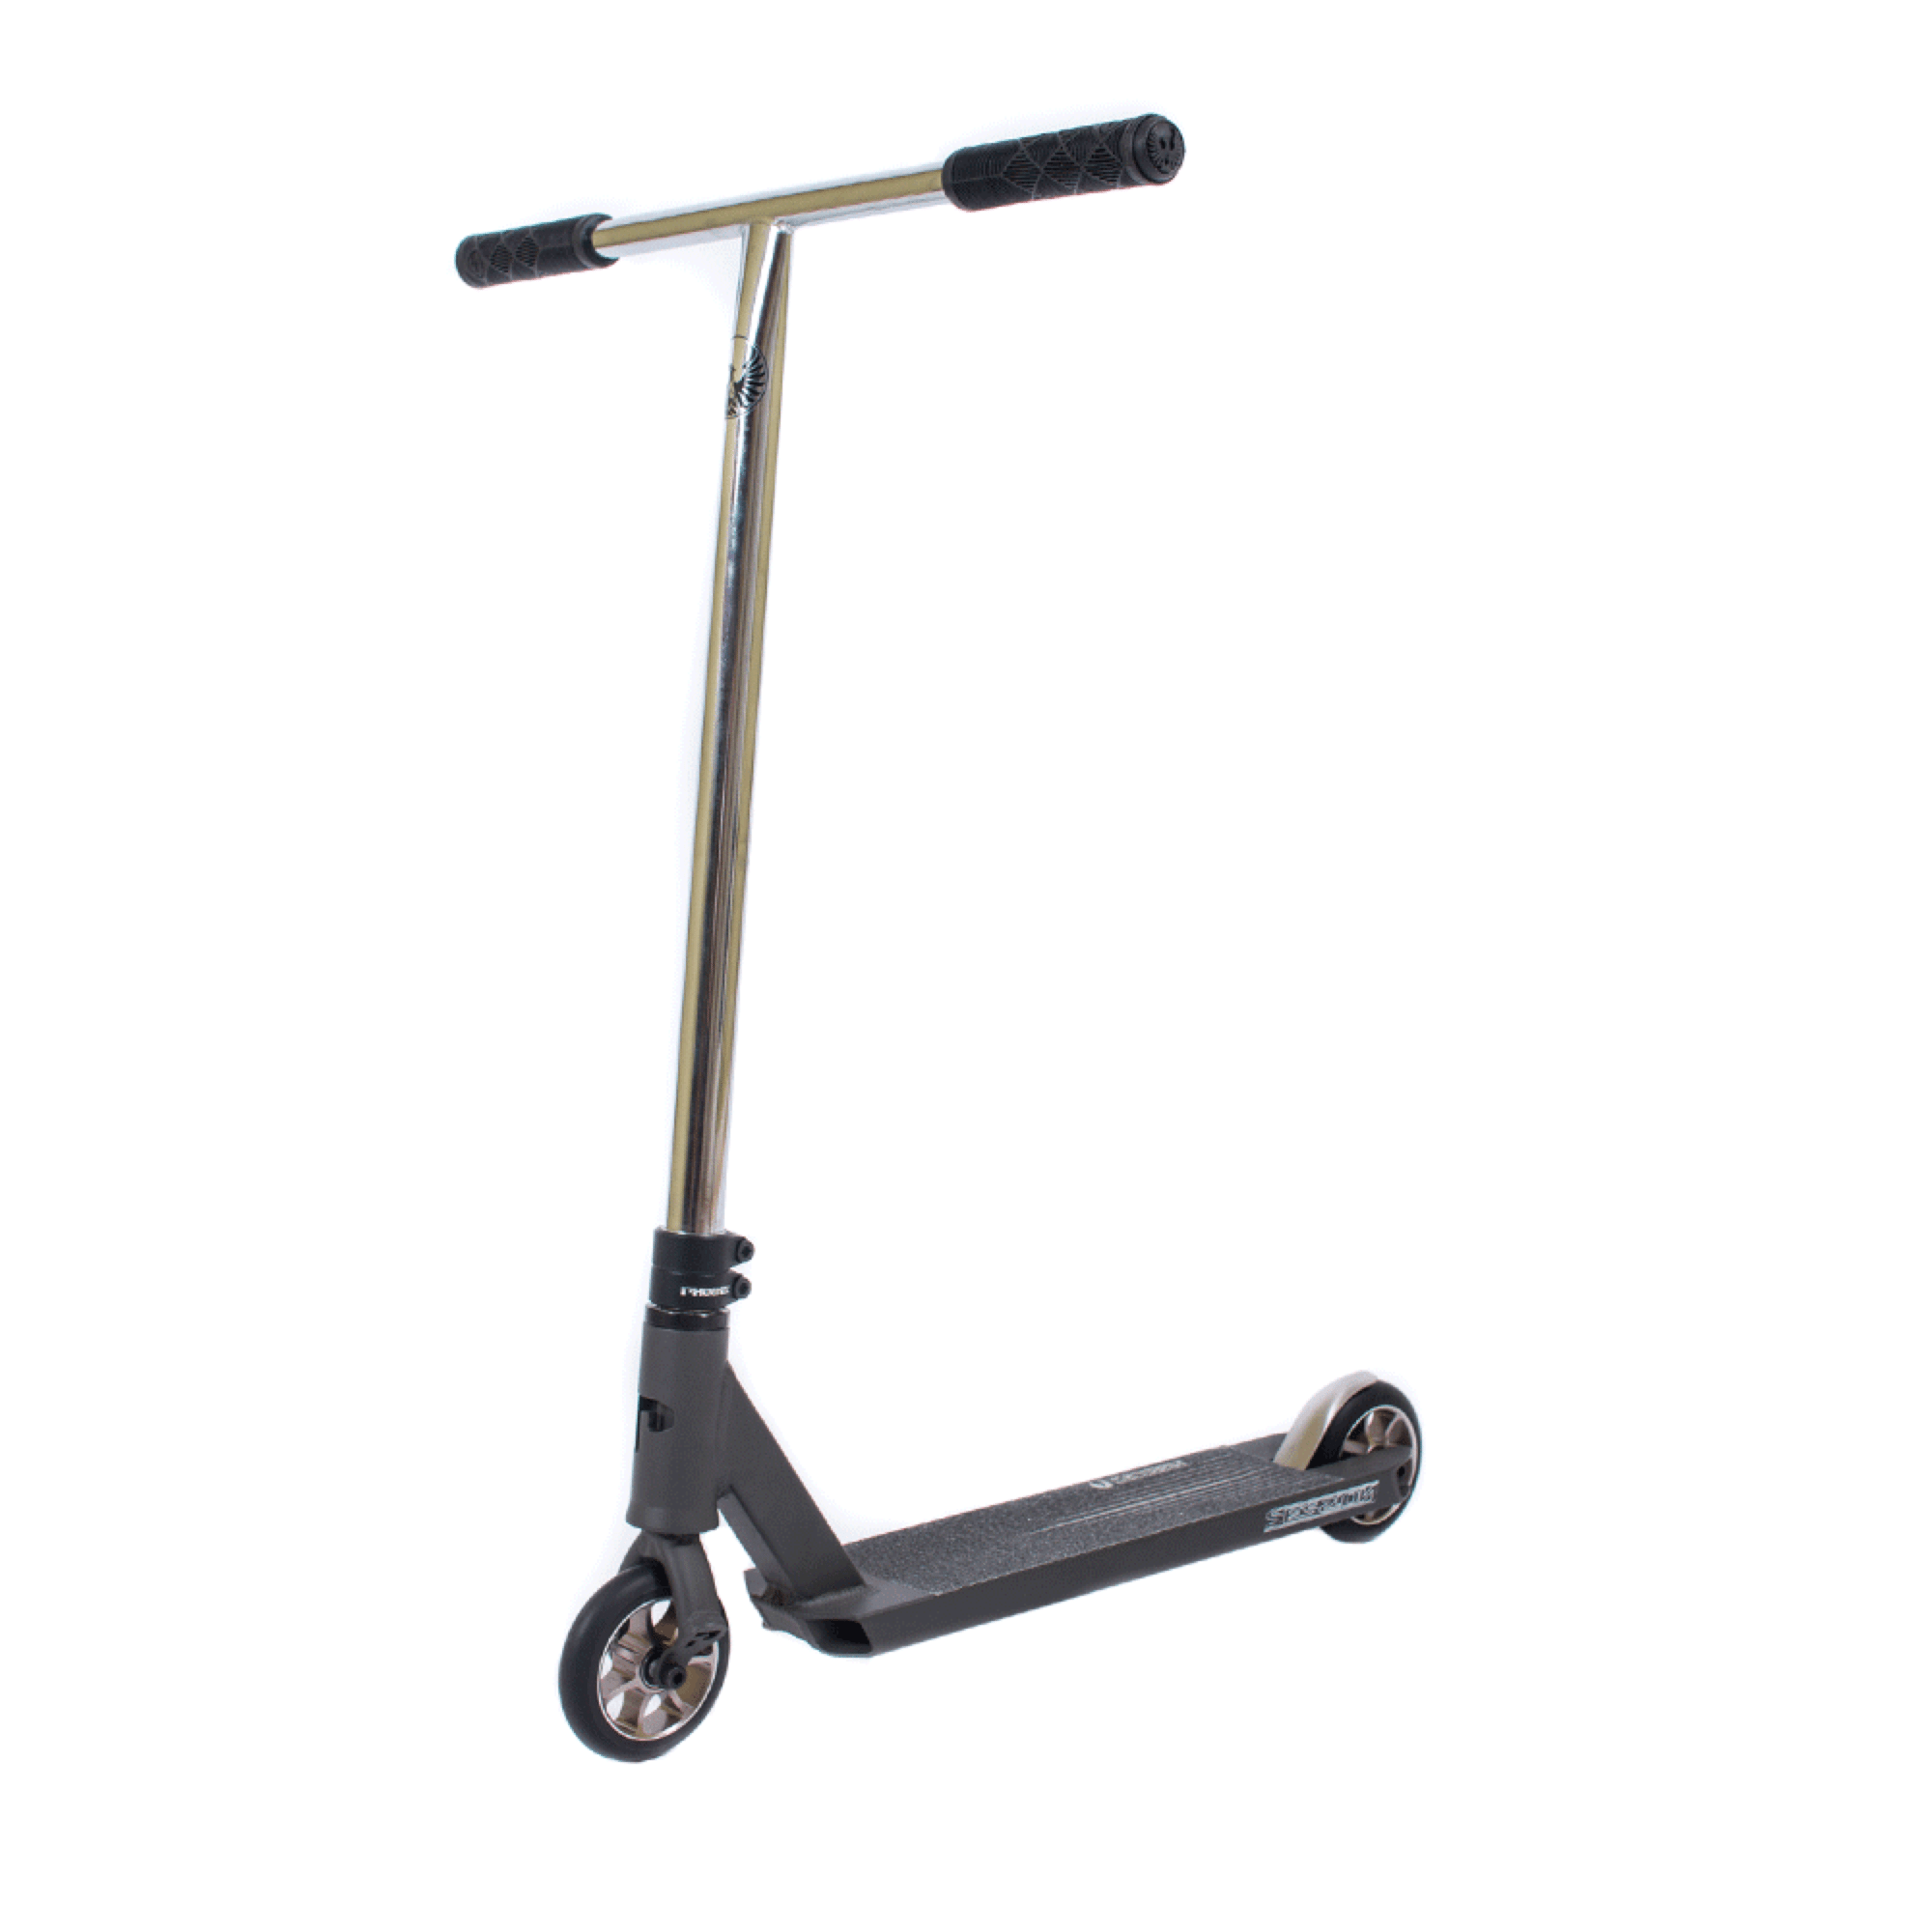 Top 10 Best Phoenix Pro Scooters Review 2018 Guide